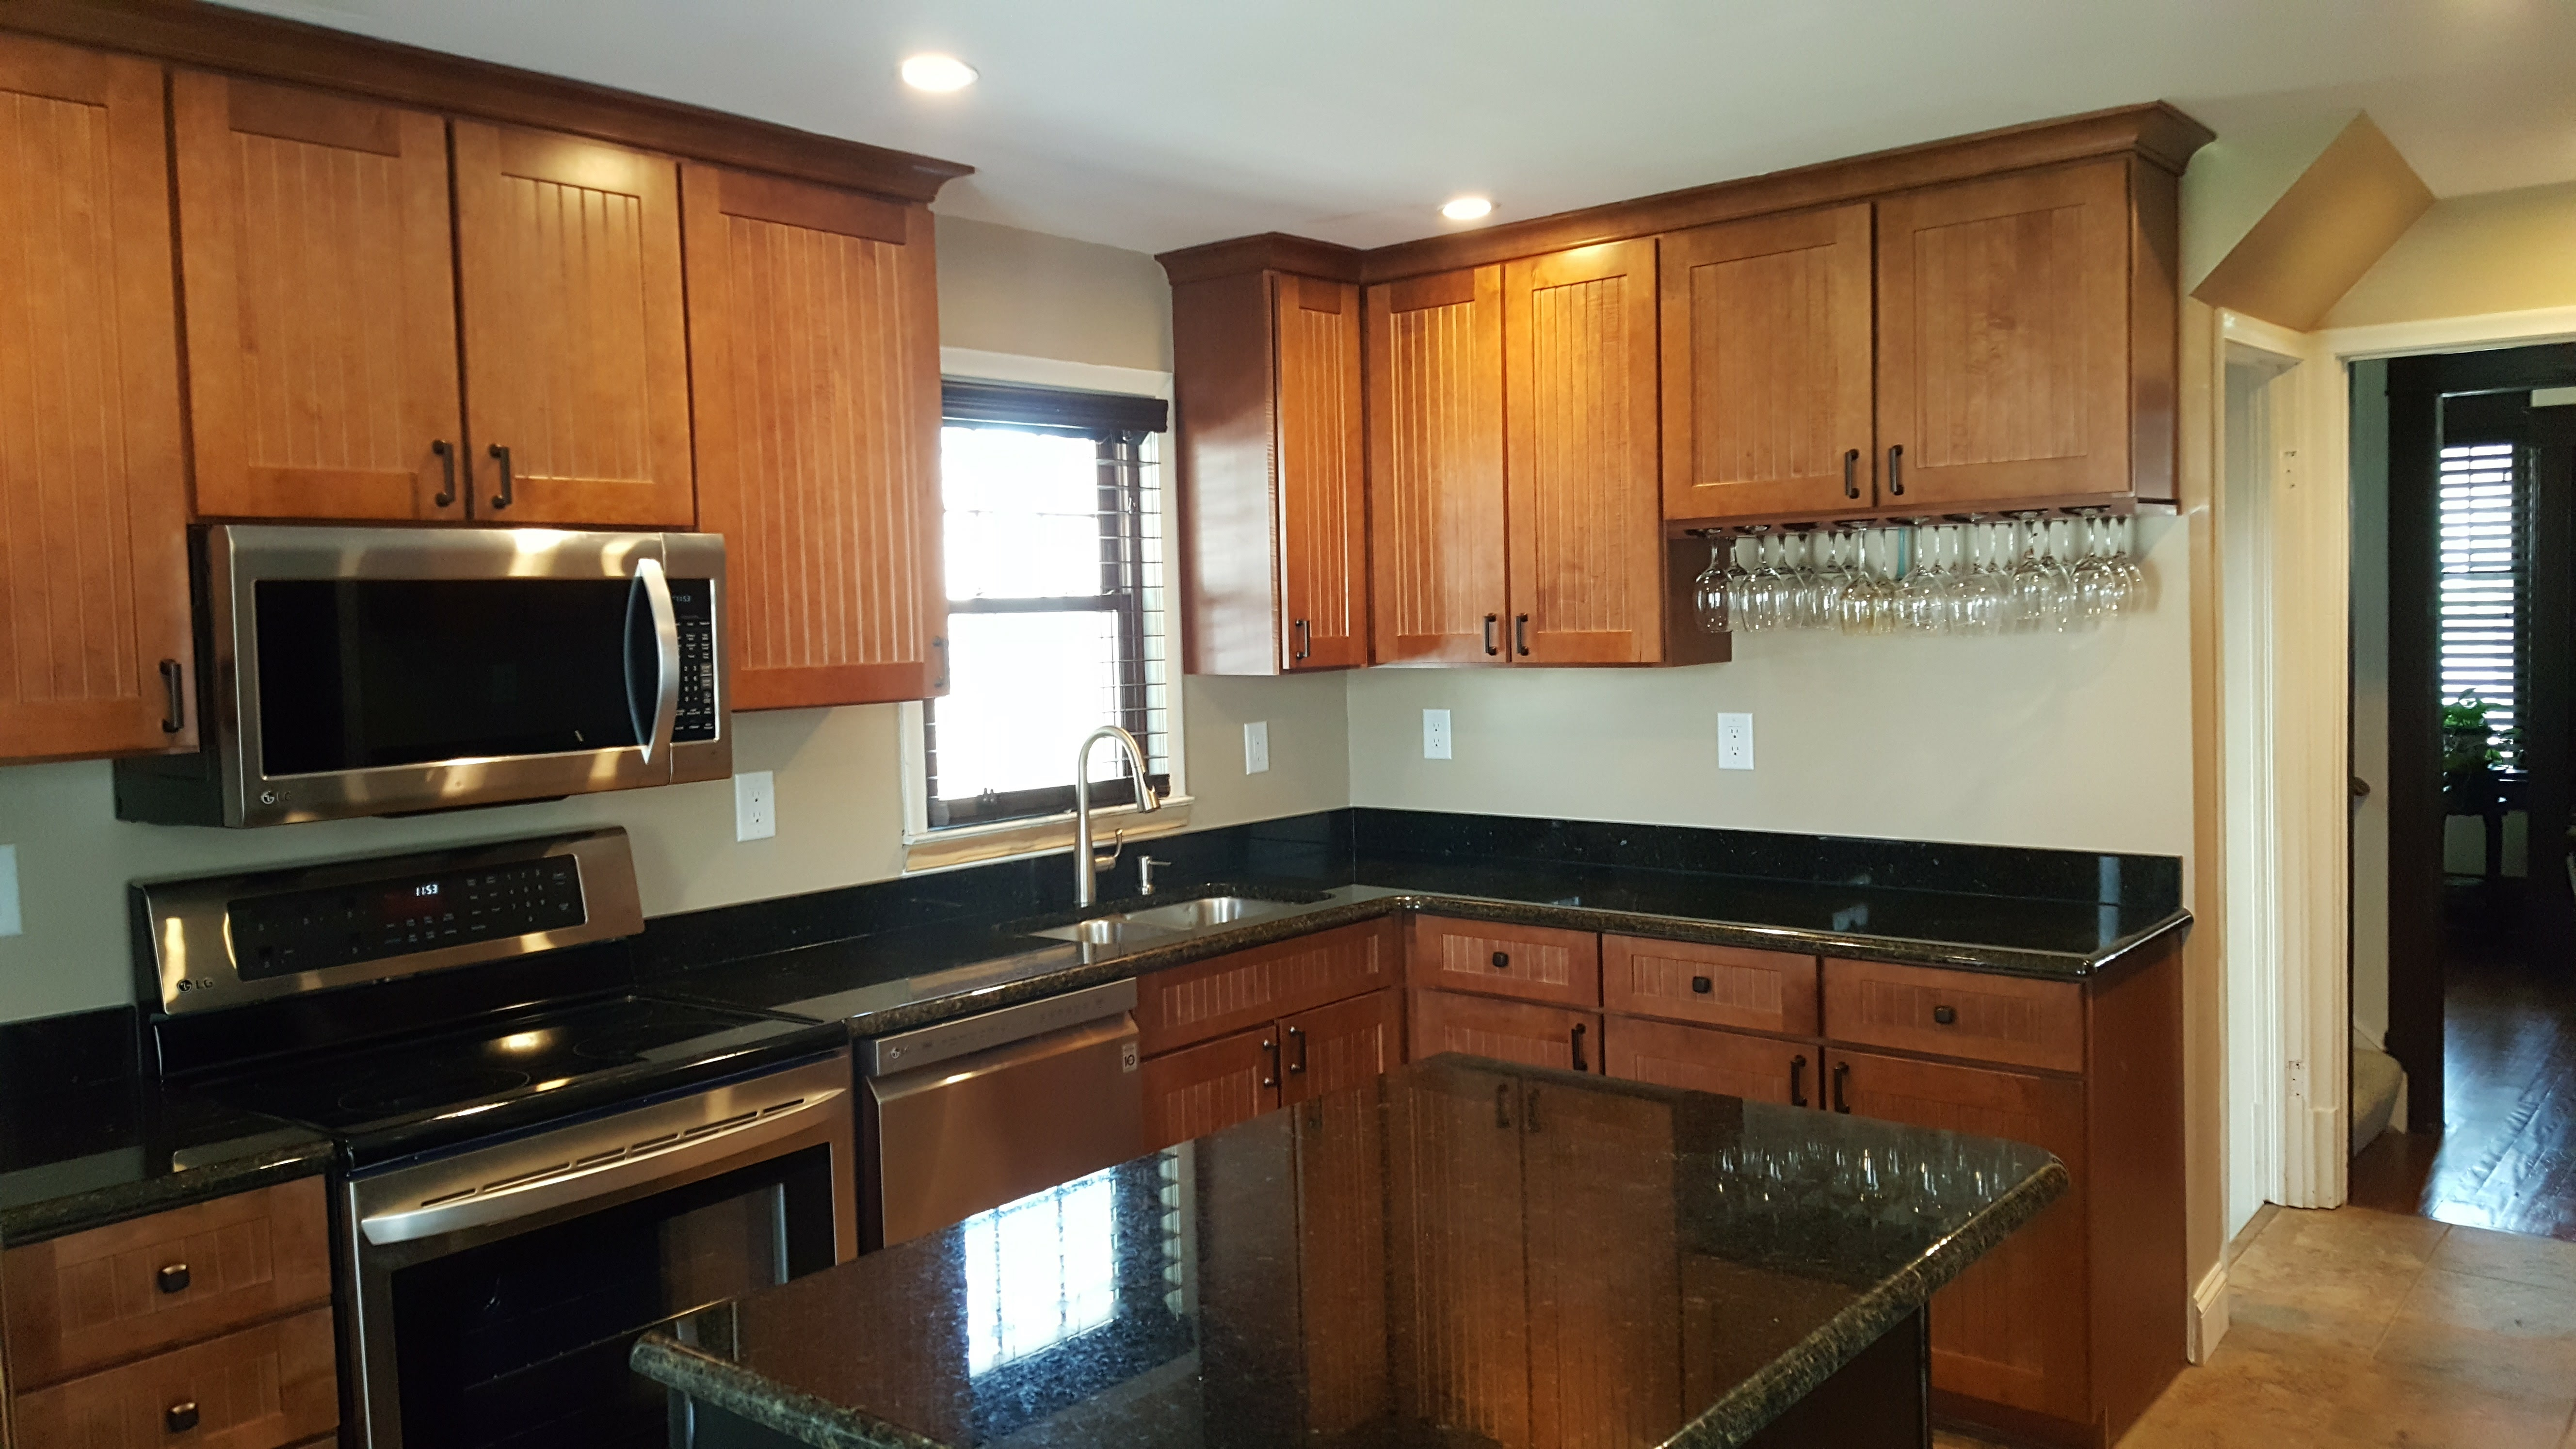 Kitchen Projects Our Latest Kitchen Projects Landmark Contractors